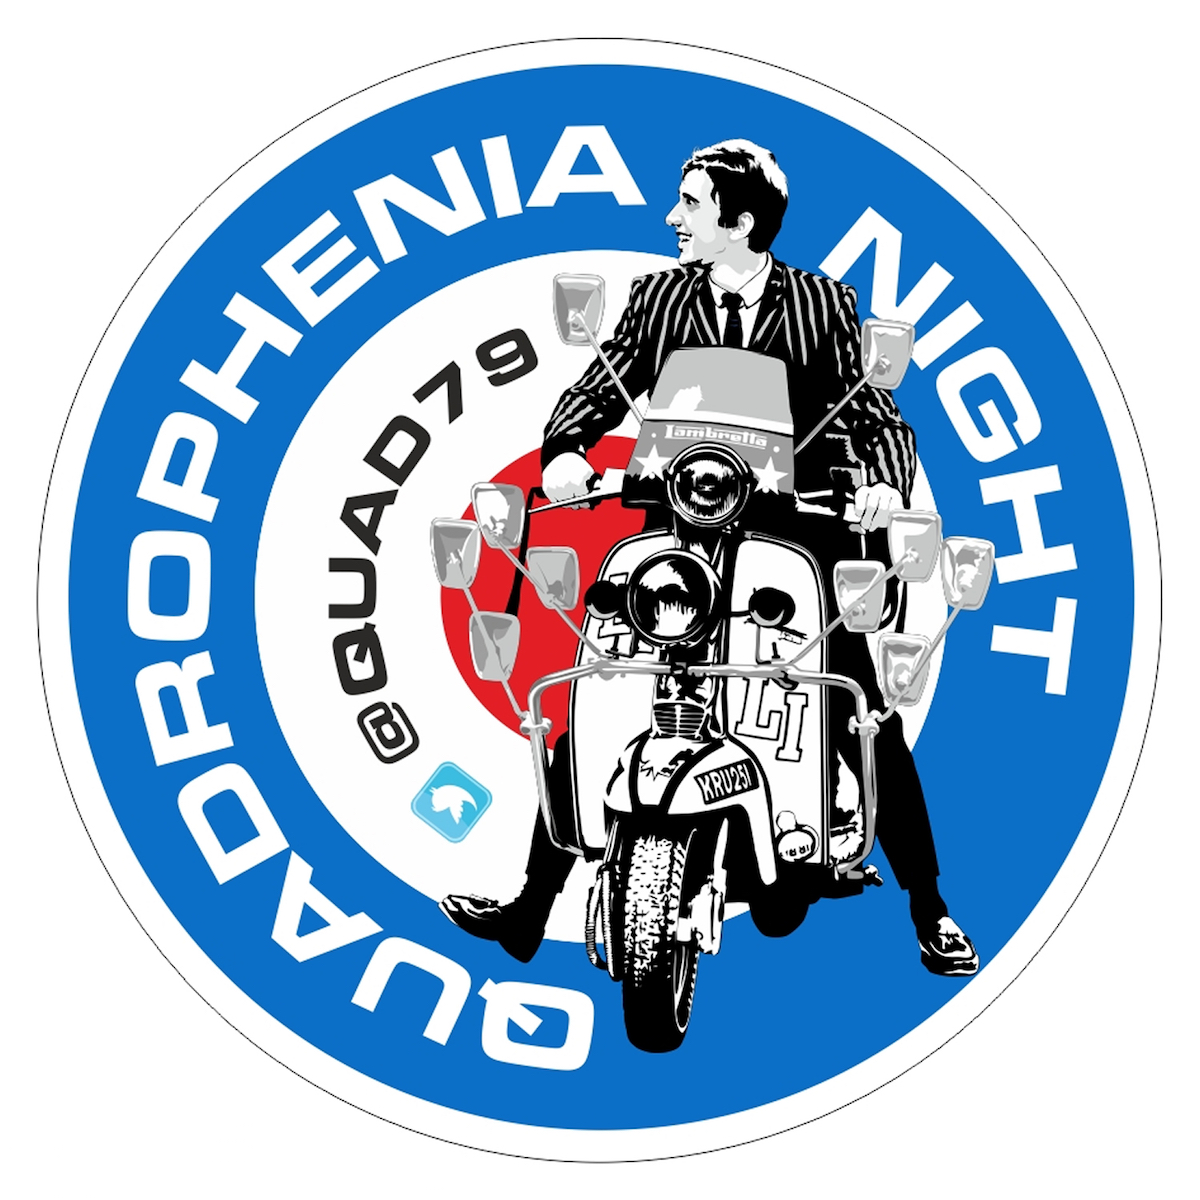 Quadrophenia Night Ft. WHO'S NEXT